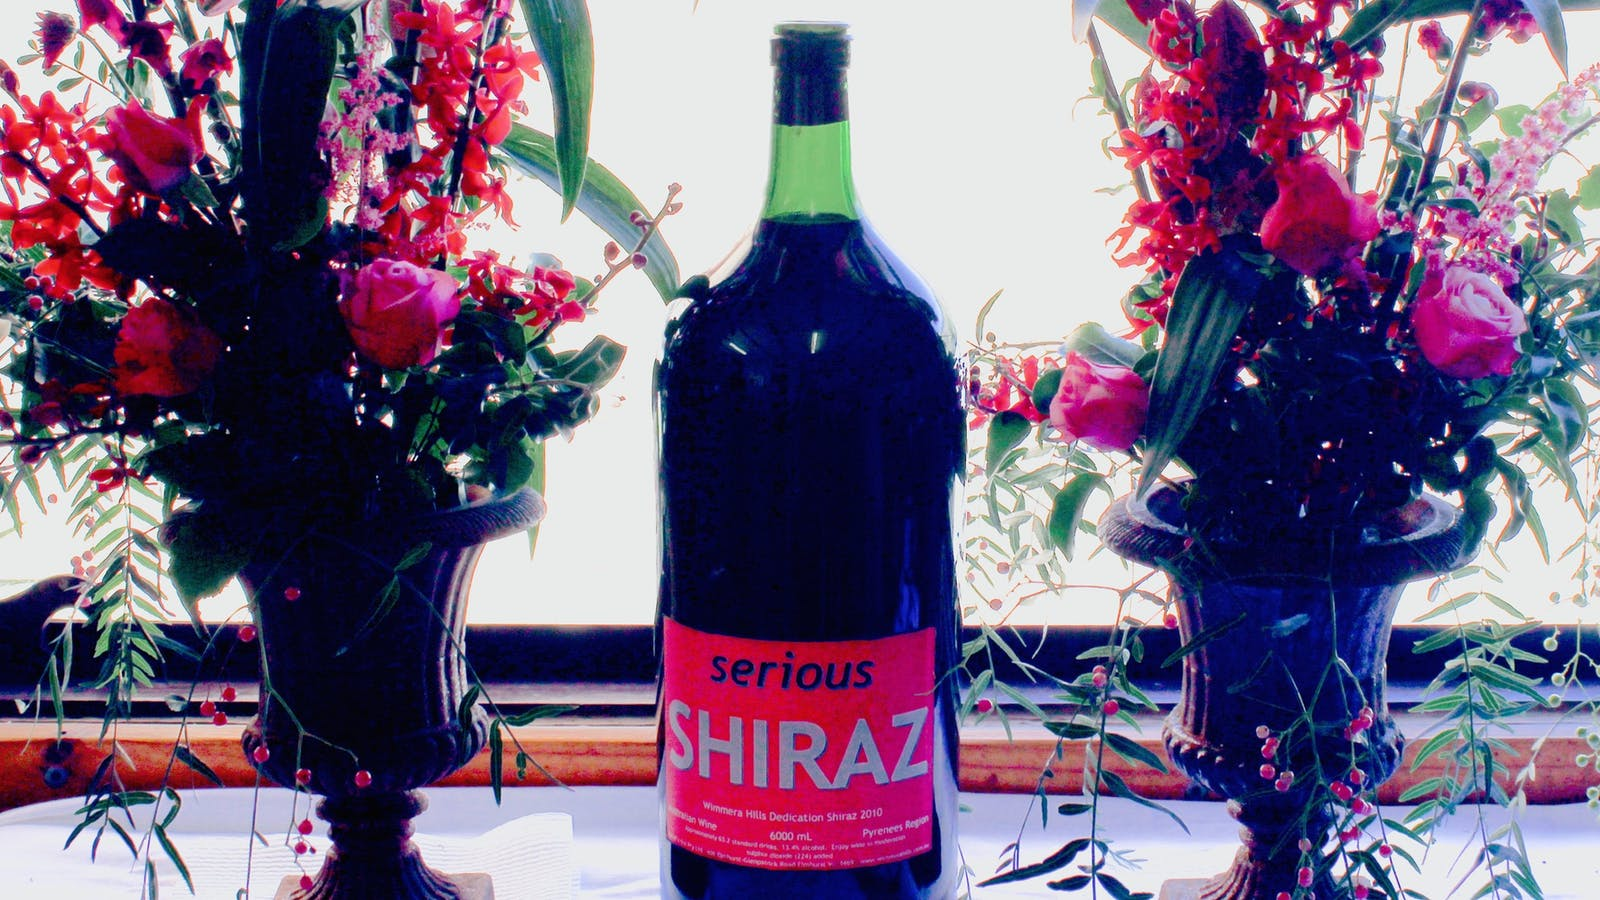 Jeroboam of shiraz - Wimmera Hills Winery